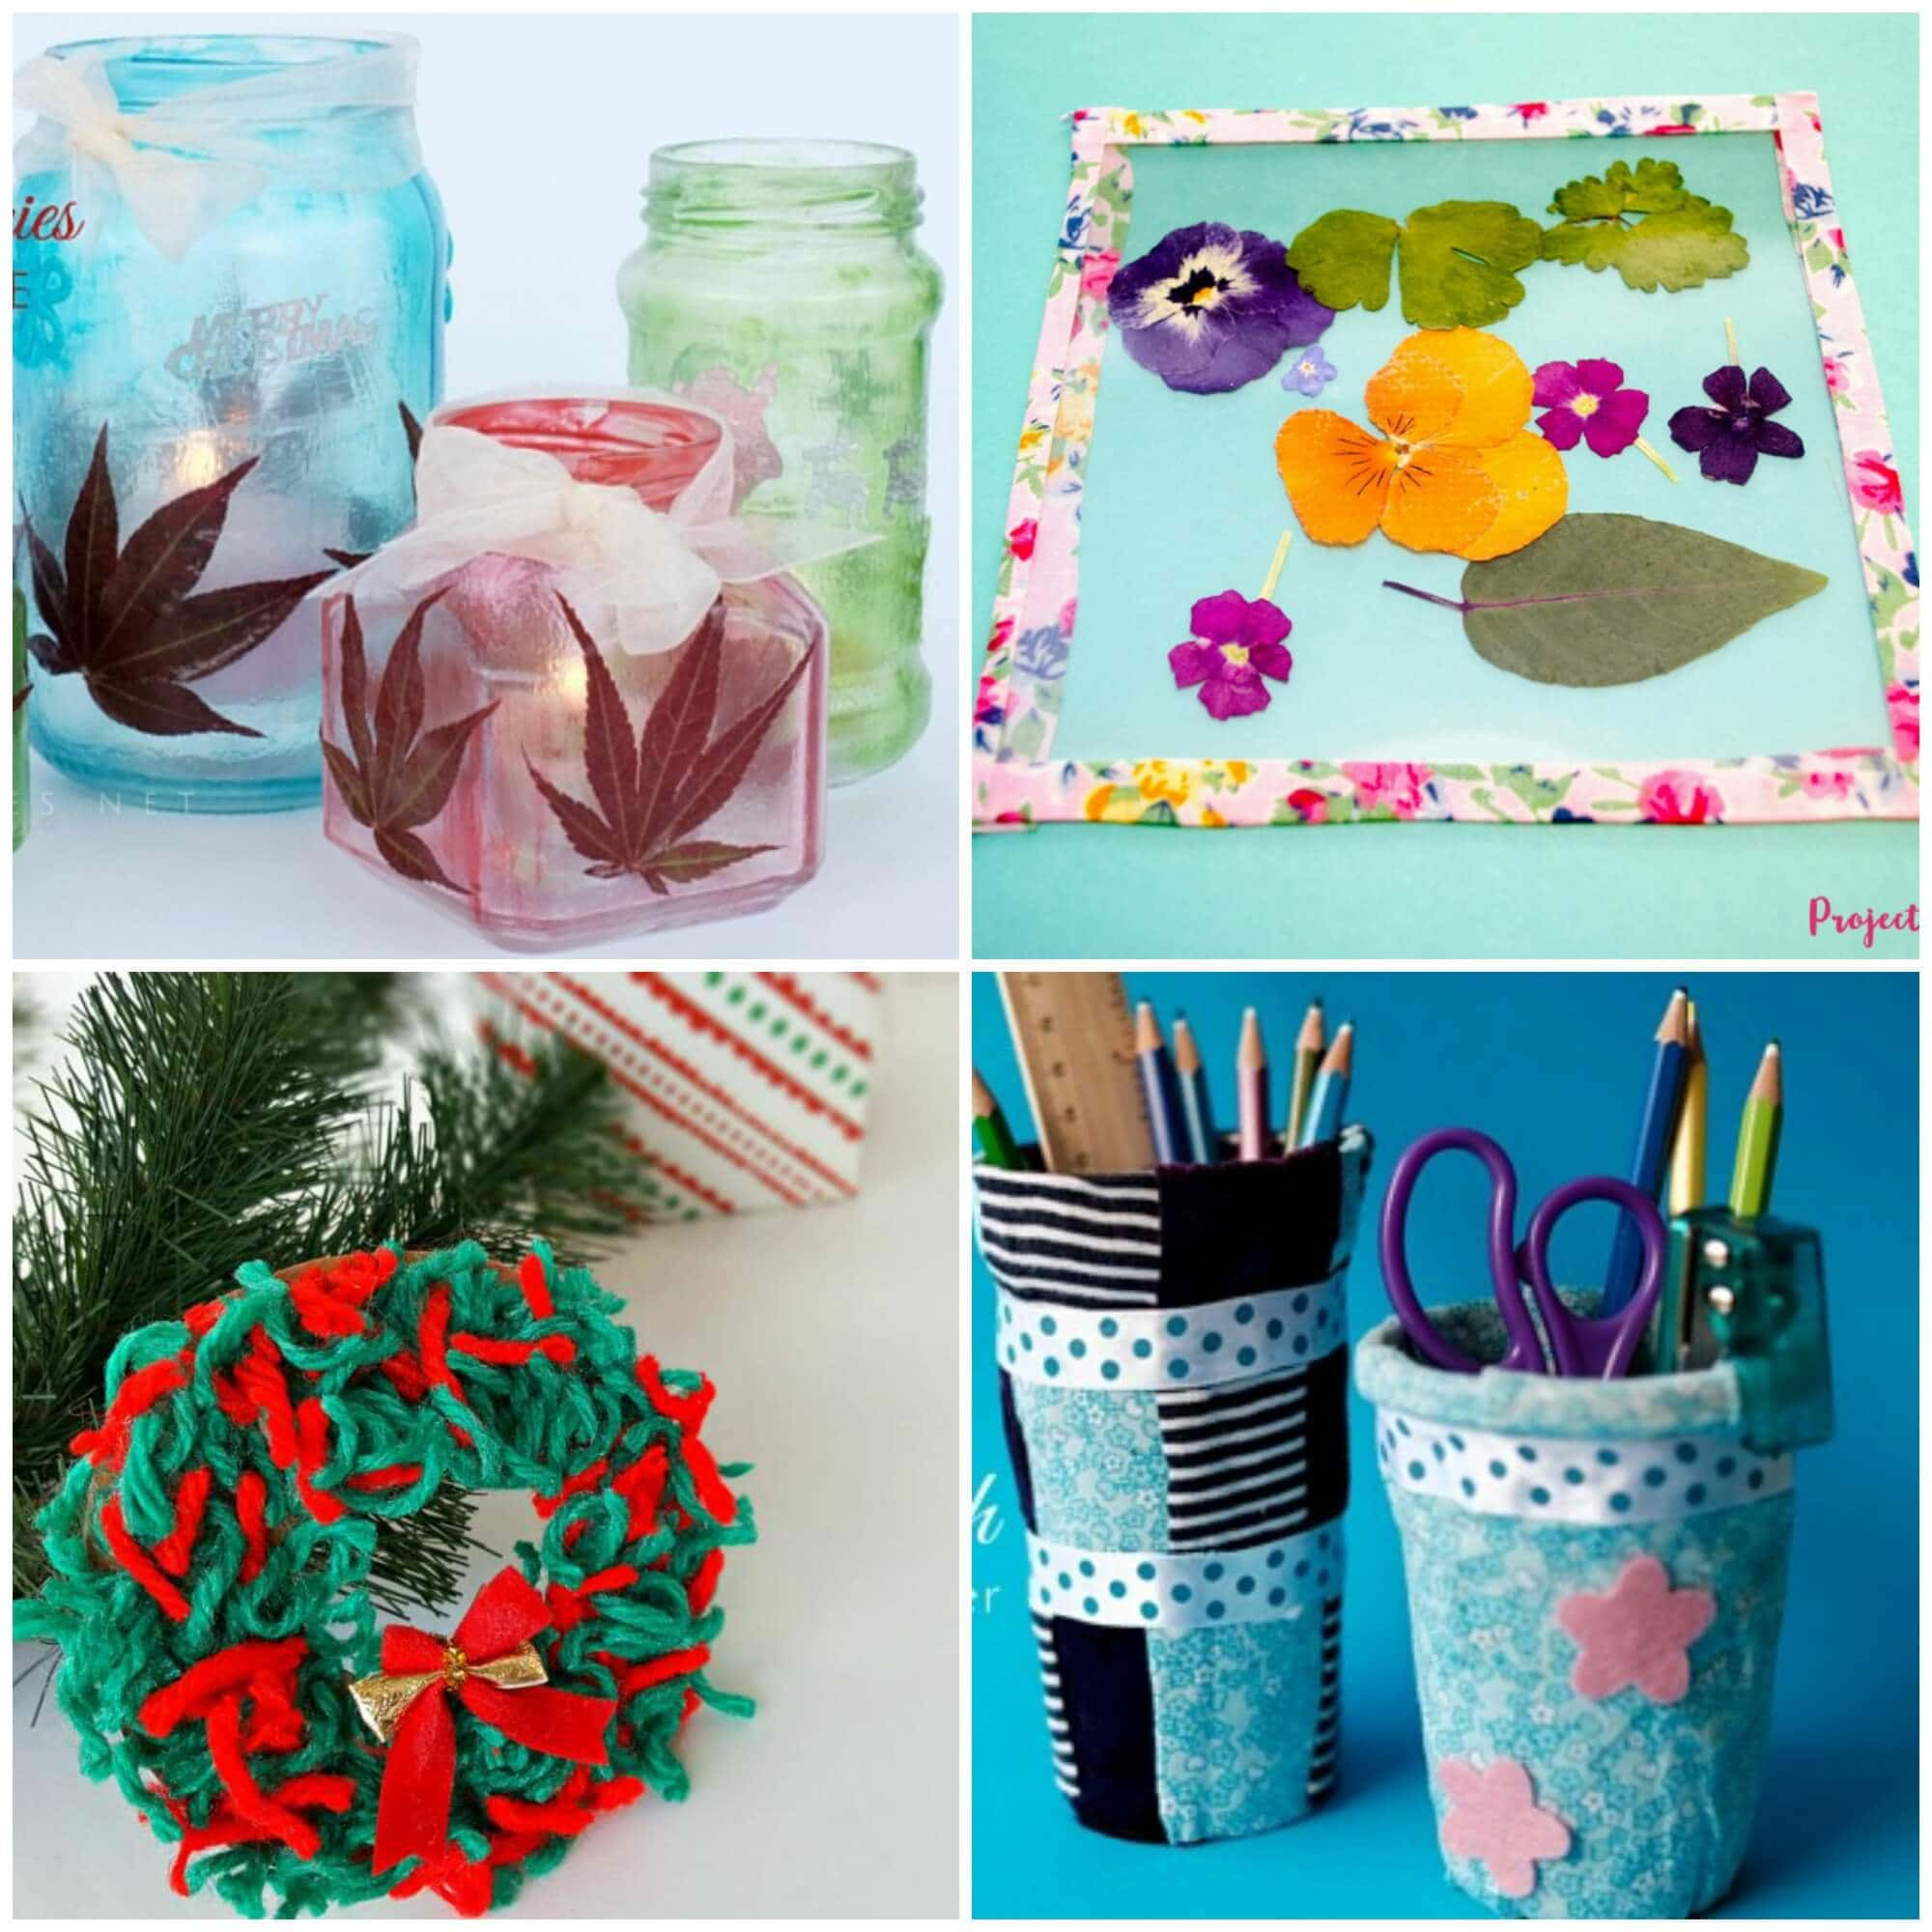 Save money and help children to create a special handmade Christmas present for family and friends with this collection of project and activity ideas!